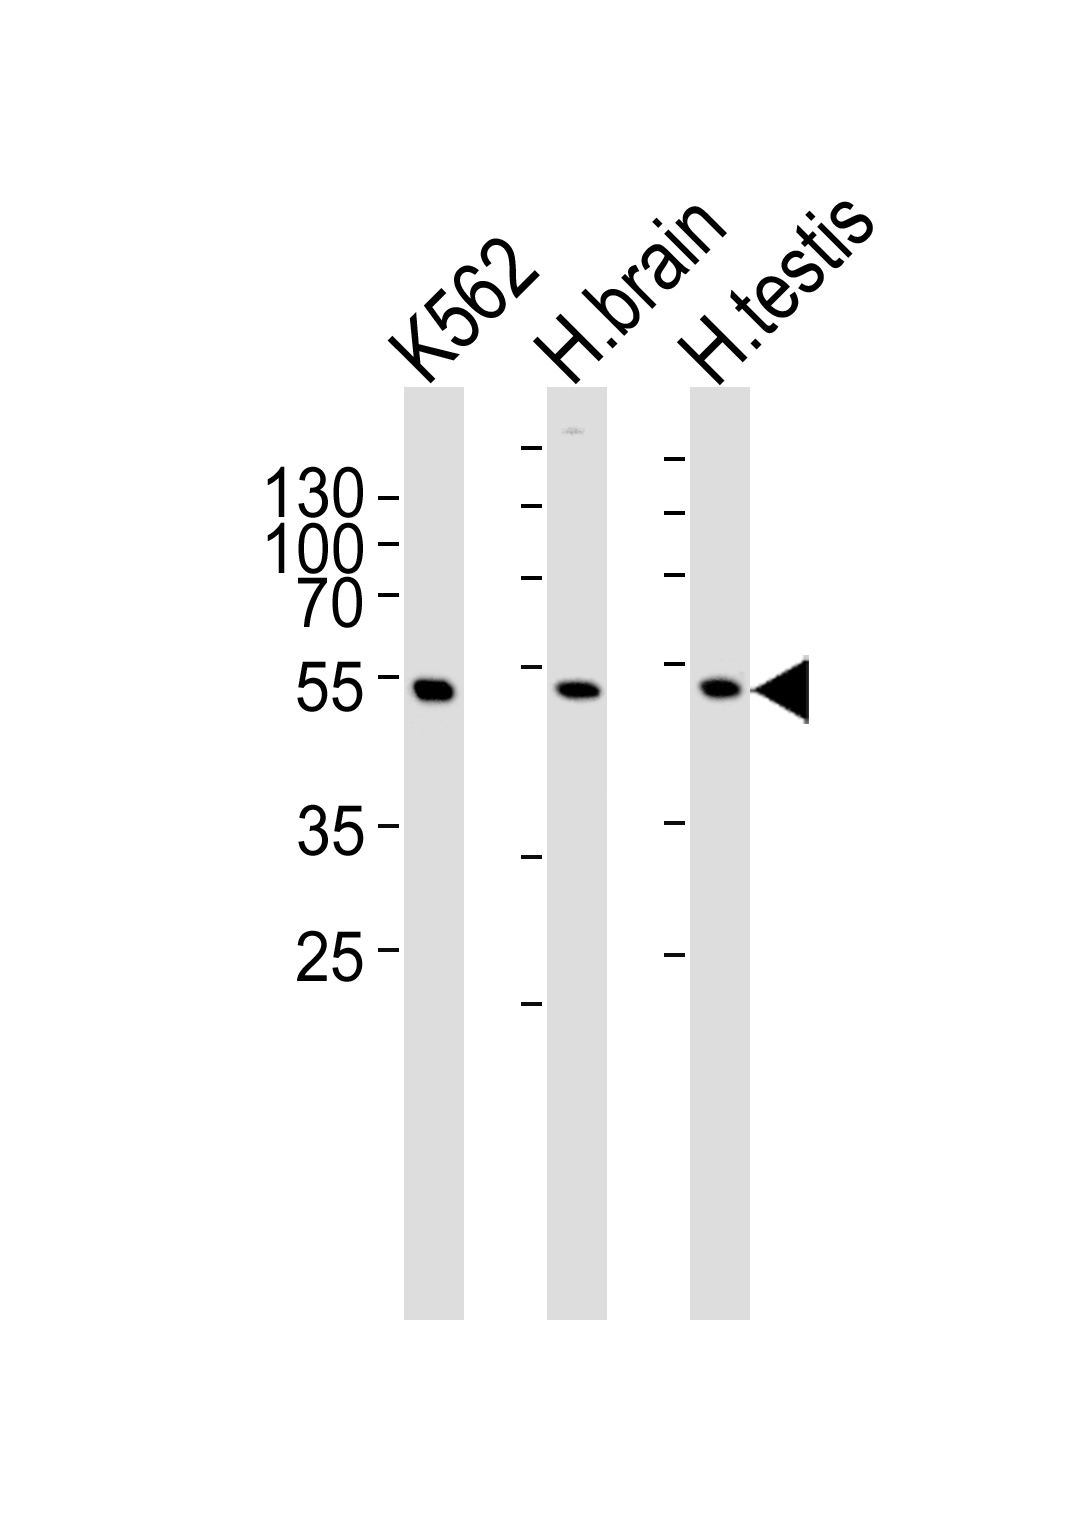 Western blot of lysates from K562 cell line and human brain, testis tissue lysate(from left to right), using GABRG3 Antibody. Antibody was diluted at 1:1000 at each lane. A goat anti-rabbit IgG H&L (HRP) at 1:5000 dilution was used as the secondary antibody. Lysates at 35ug per lane.